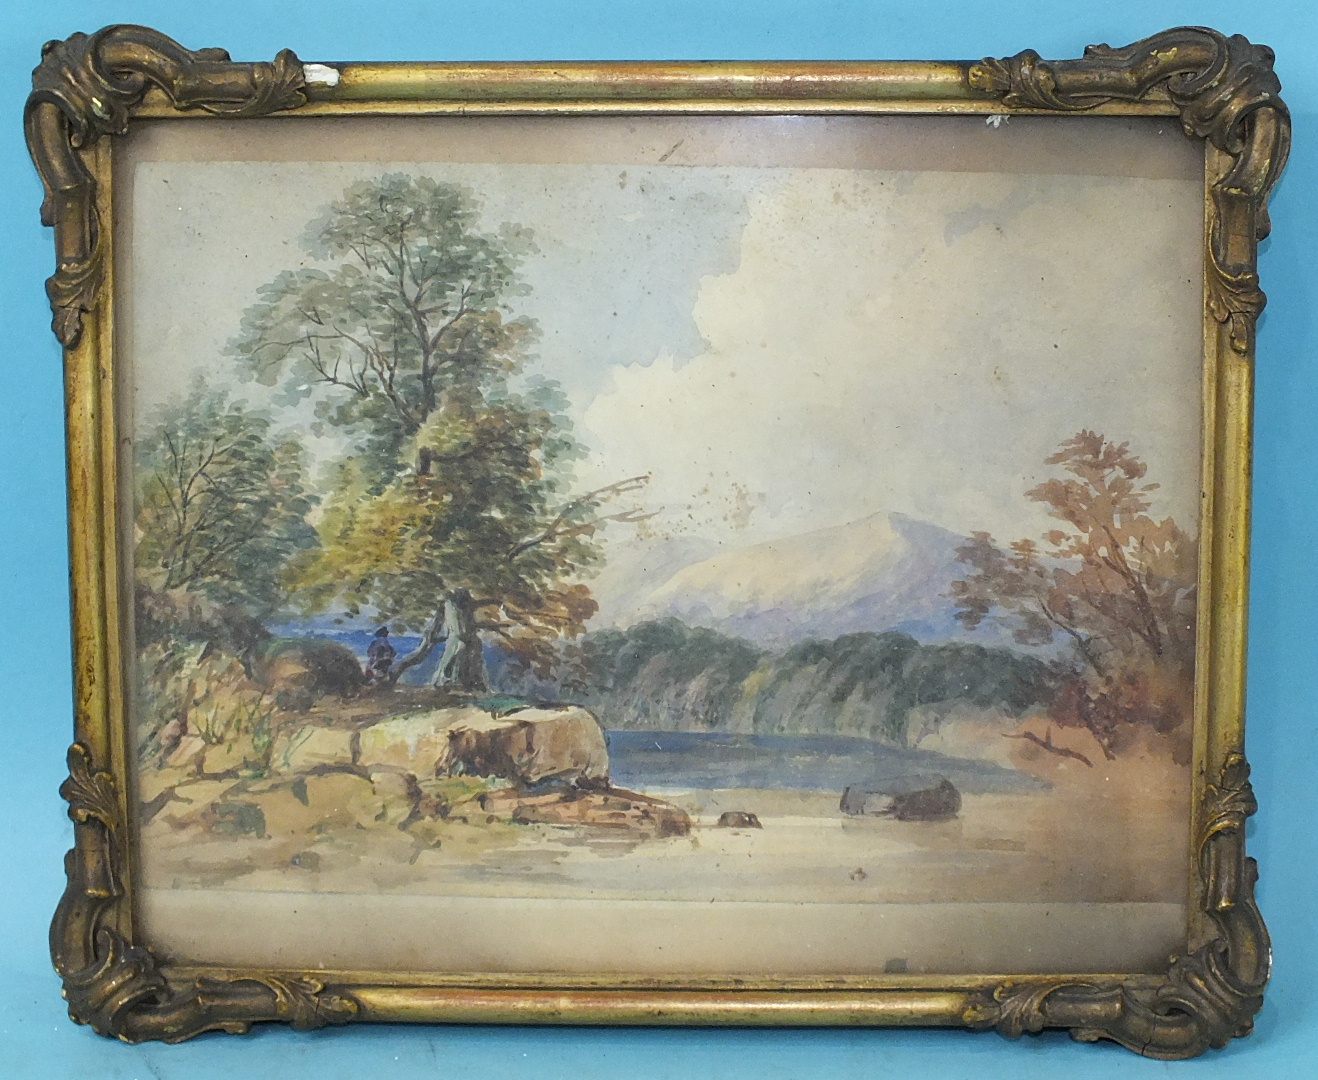 Lot 70 - 19th century English School ON THE ROAD TO BLACKHEATH THROUGH CHARLTON, THE THAMES SHOWN IN THE